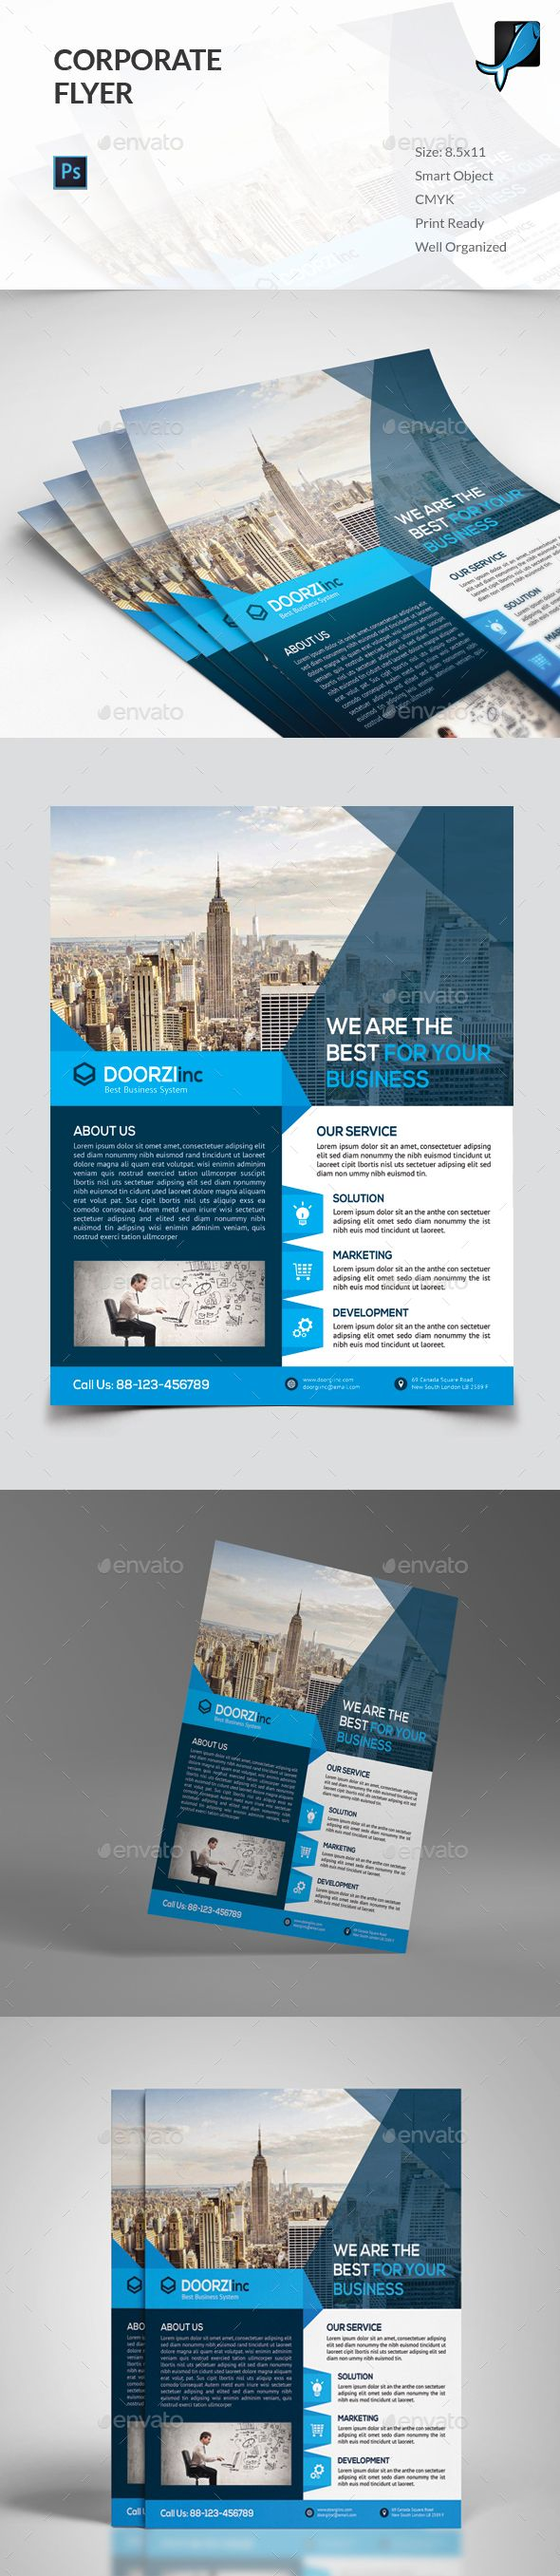 Corporate Flyer Template PSD #design Download: http://graphicriver.net/item/corporate-flyer/13488179?ref=ksioks